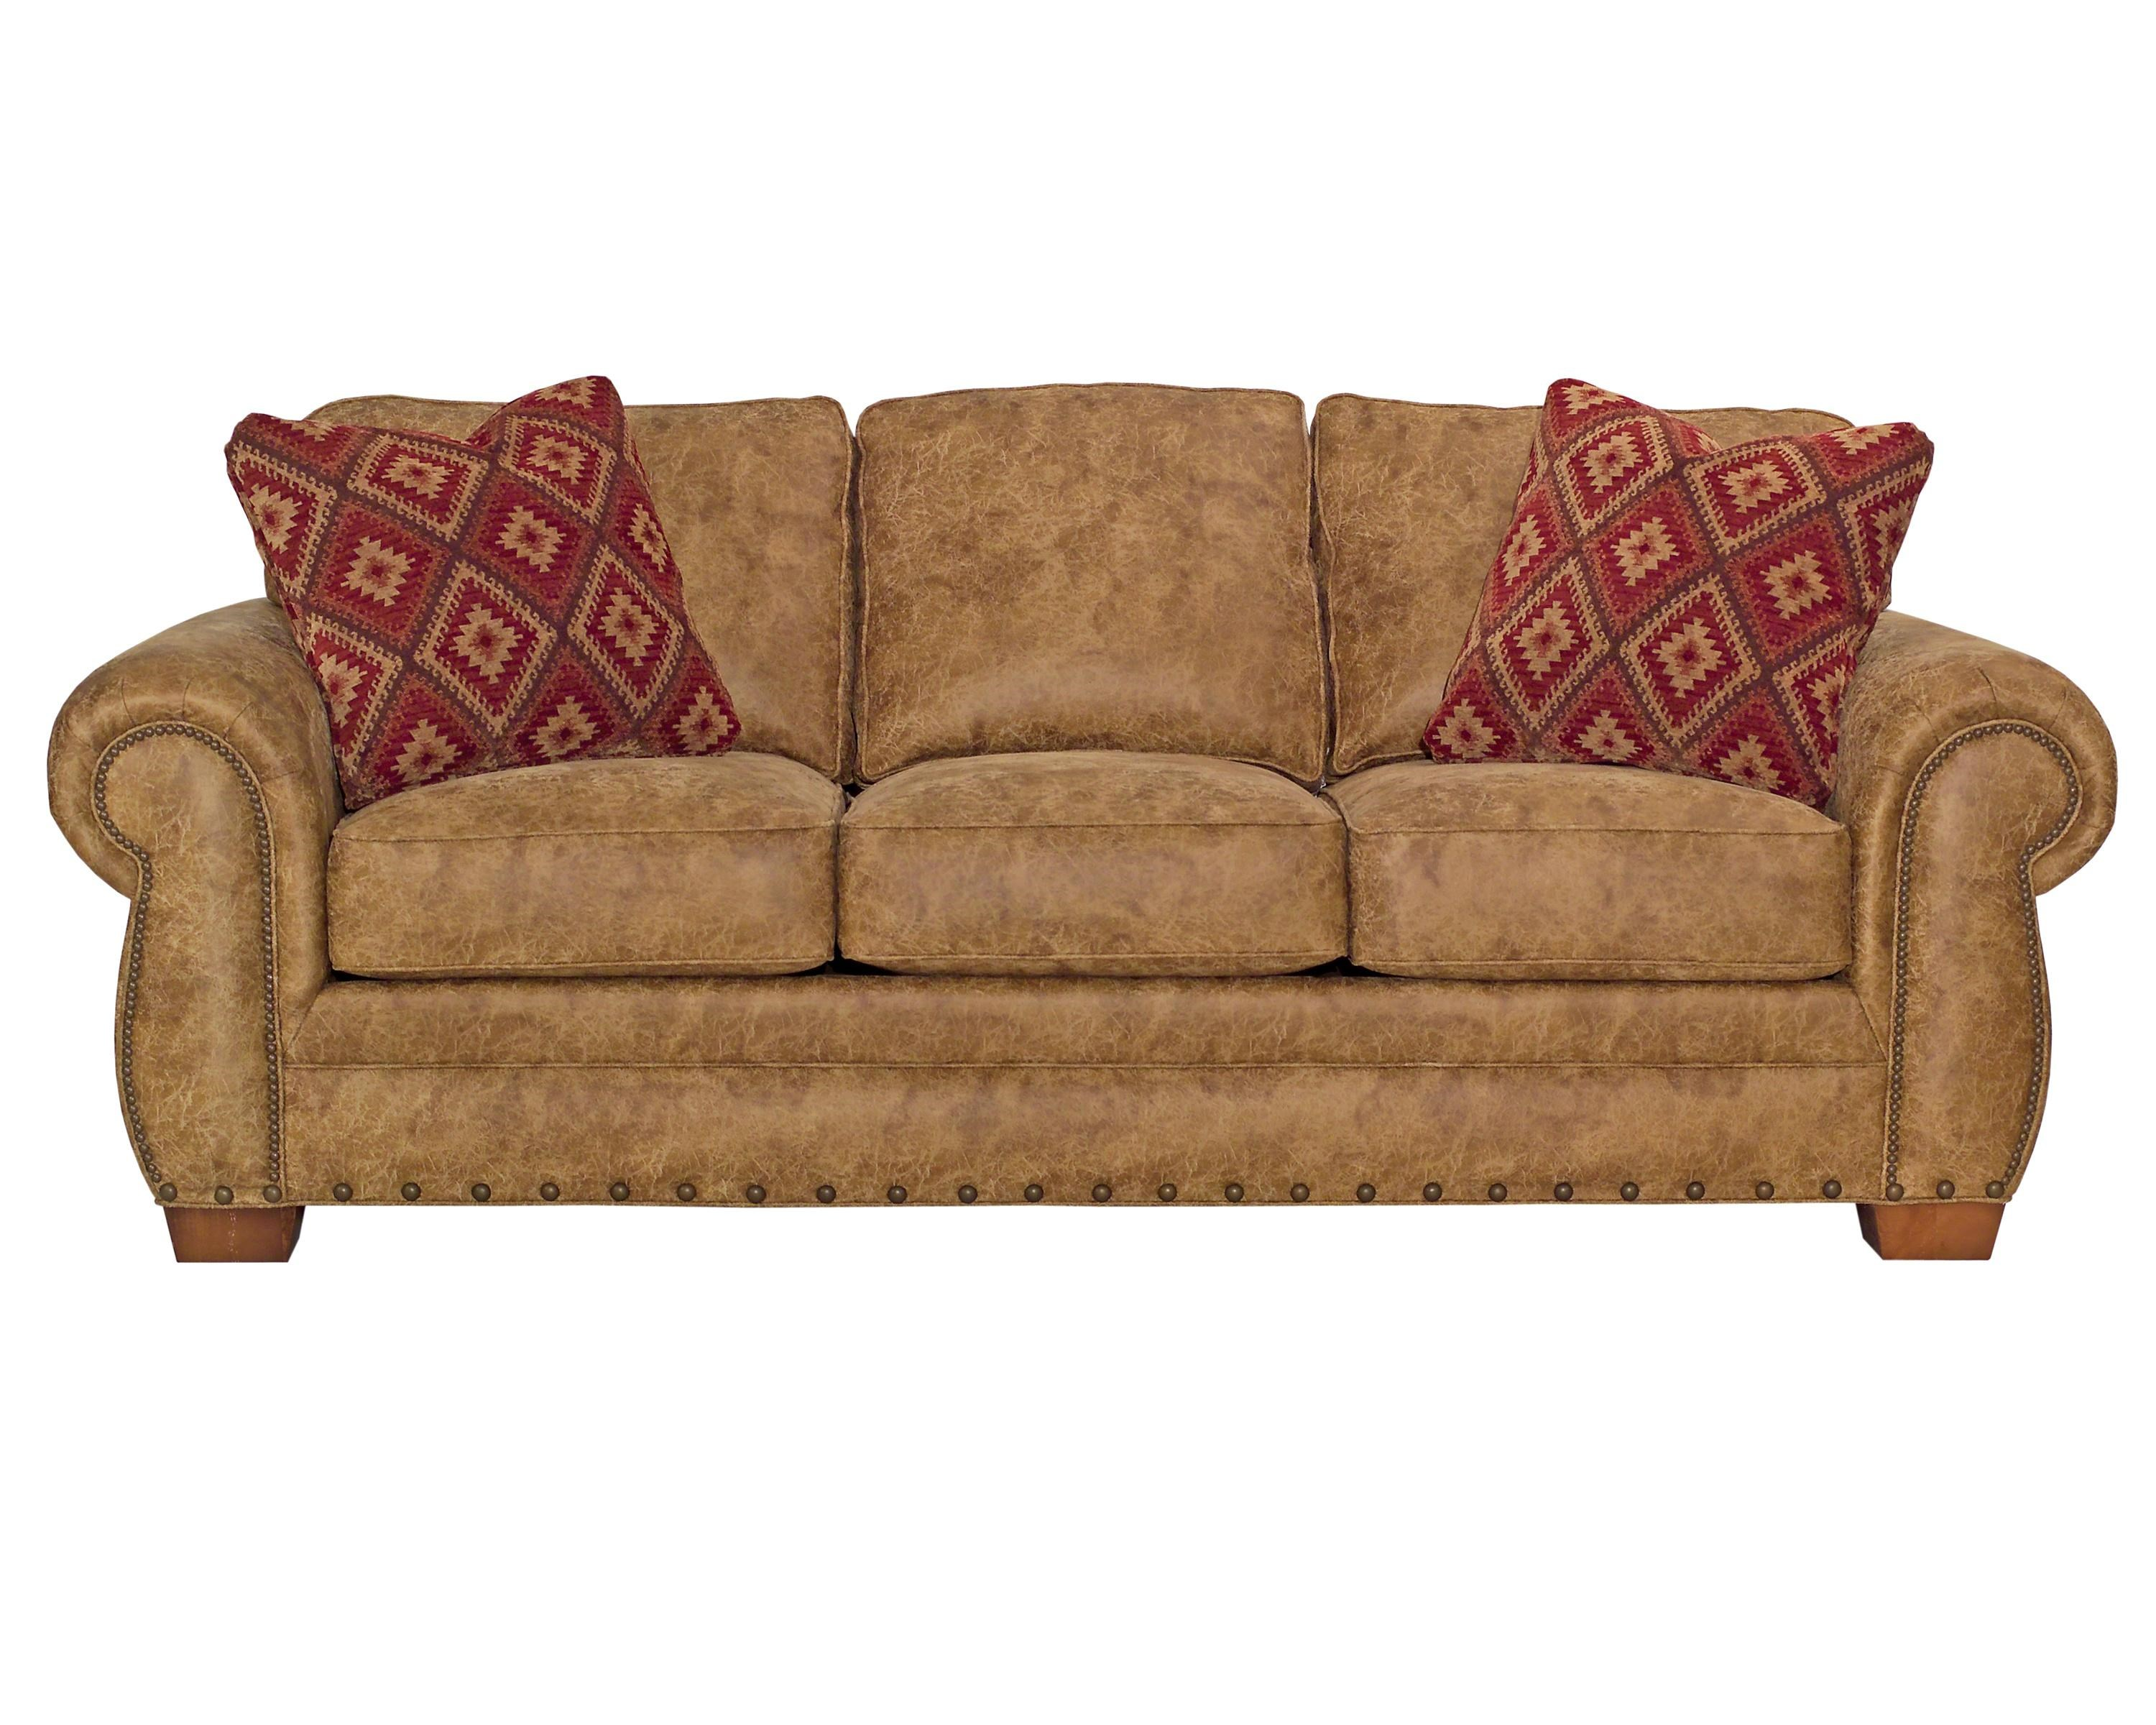 broyhill sleeper sofa floor level ikea furniture cambridge queen goodnight colder s cambridgequeen